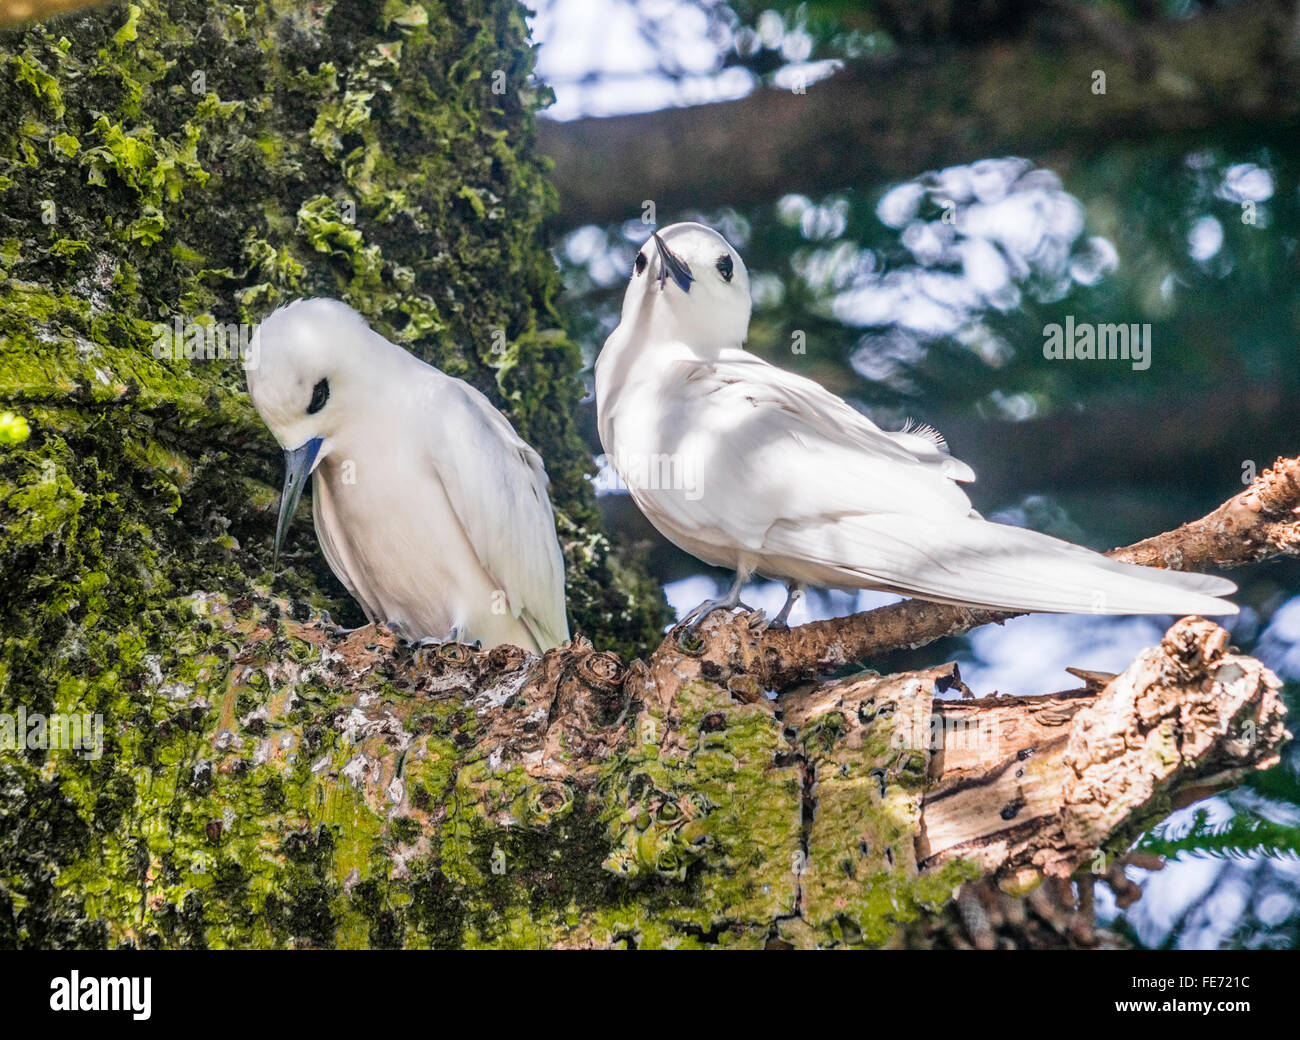 White Terns (Gypis alba) on Lord Howe Island in the Tasman Sea, Unincorporated area of New South Wales, Australia. - Stock Image